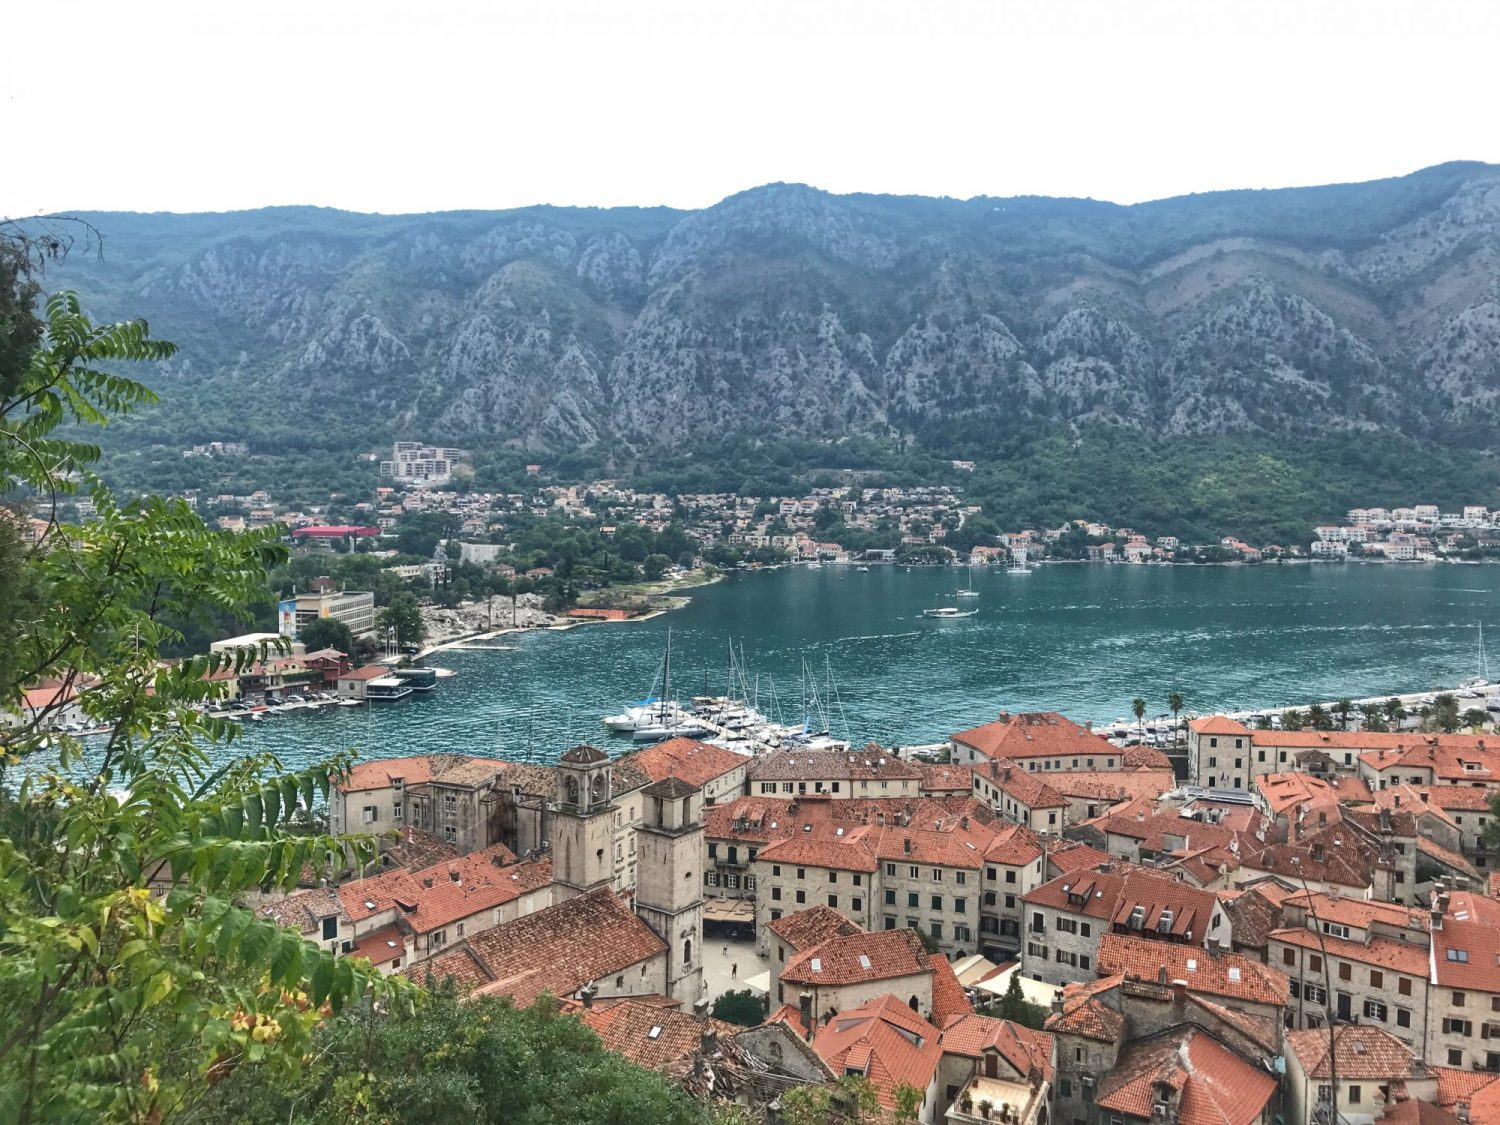 The best views in Montenegro